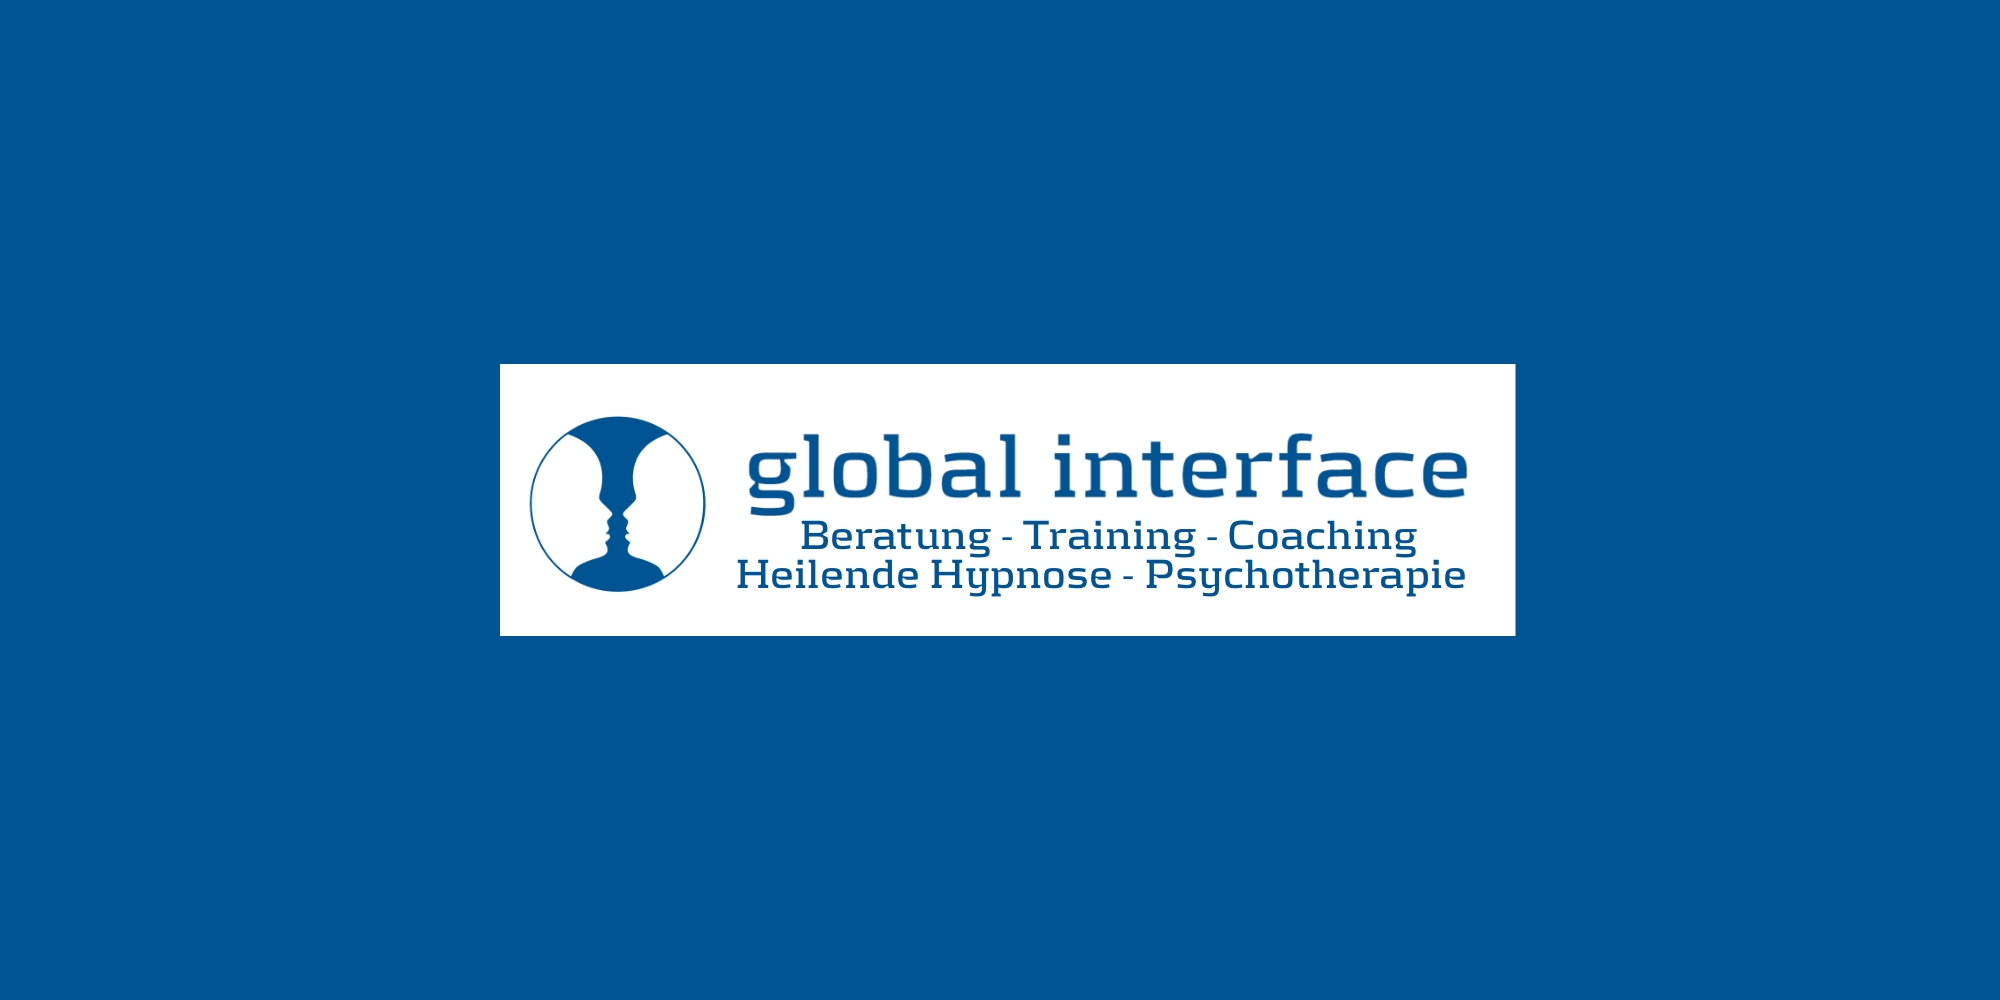 Global Interface